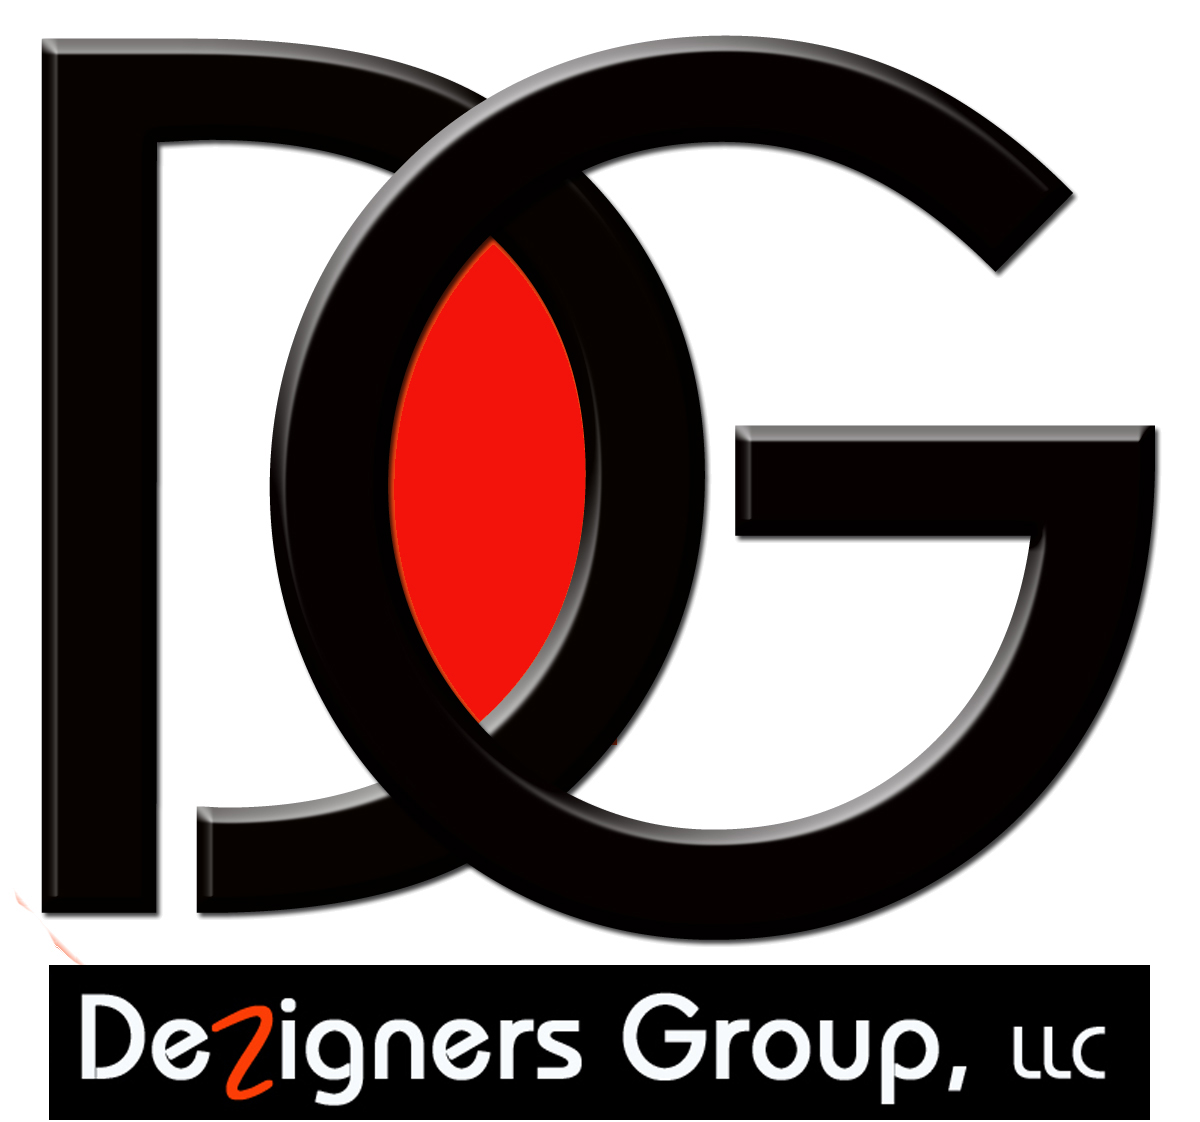 Dezigners Group